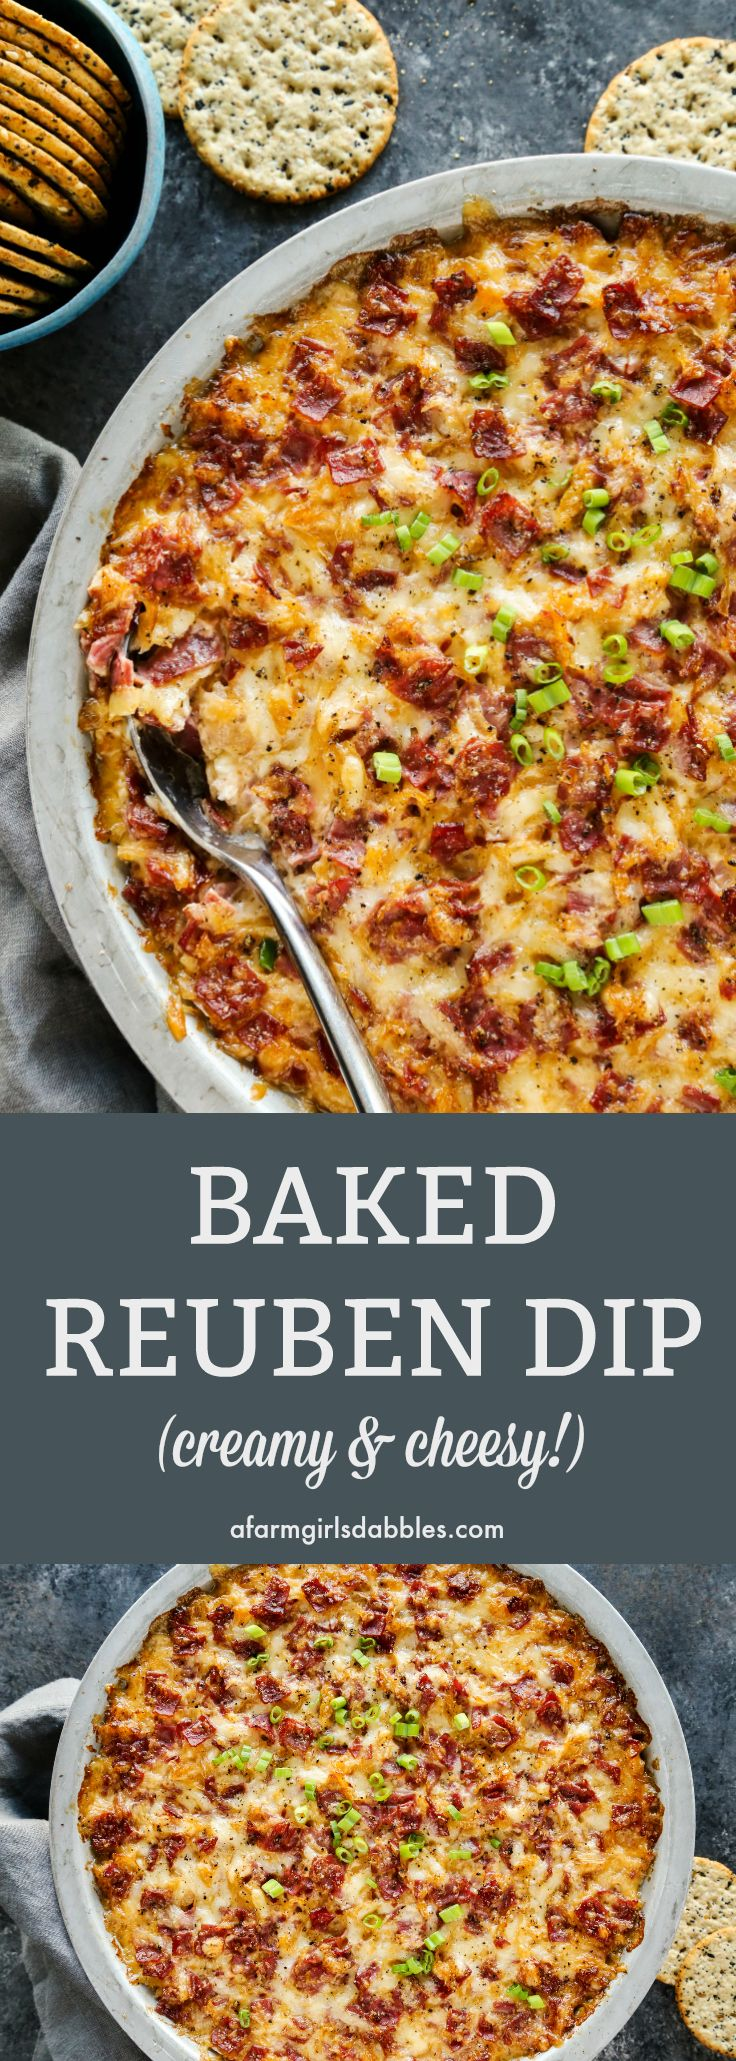 Meghan's Reuben Dip is like a deconstructed Reuben sandwich, all magnificently reborn into a baked ooey gooey, cheesy dip!